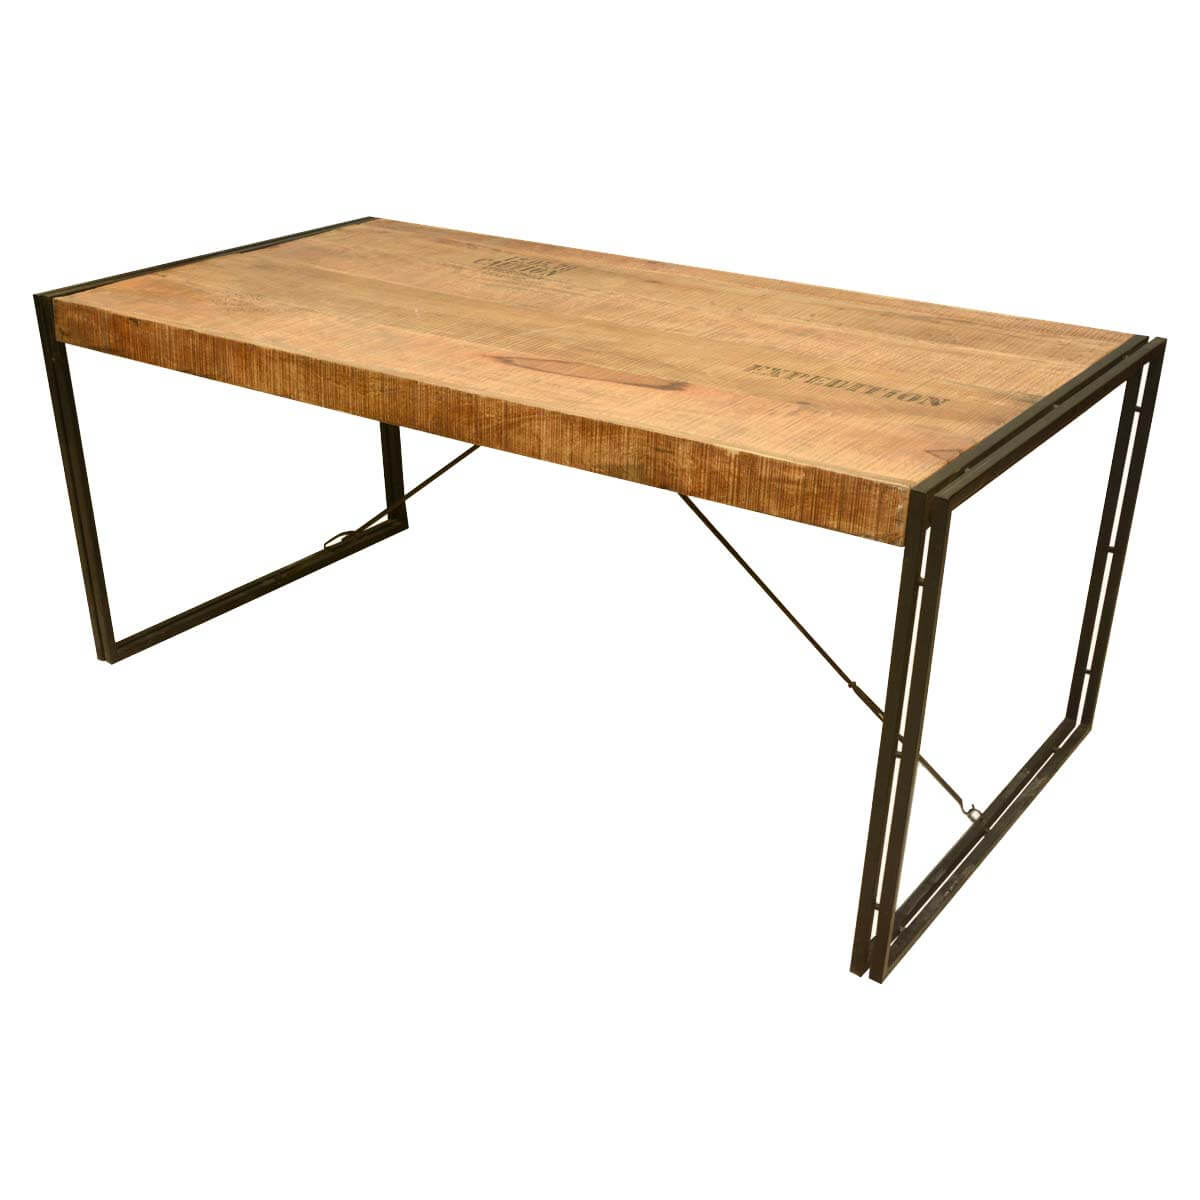 Large Rustic Industrial Style Mango Wood and Iron Dining Table : 58032 from www.sierralivingconcepts.com size 1200 x 1200 jpeg 91kB